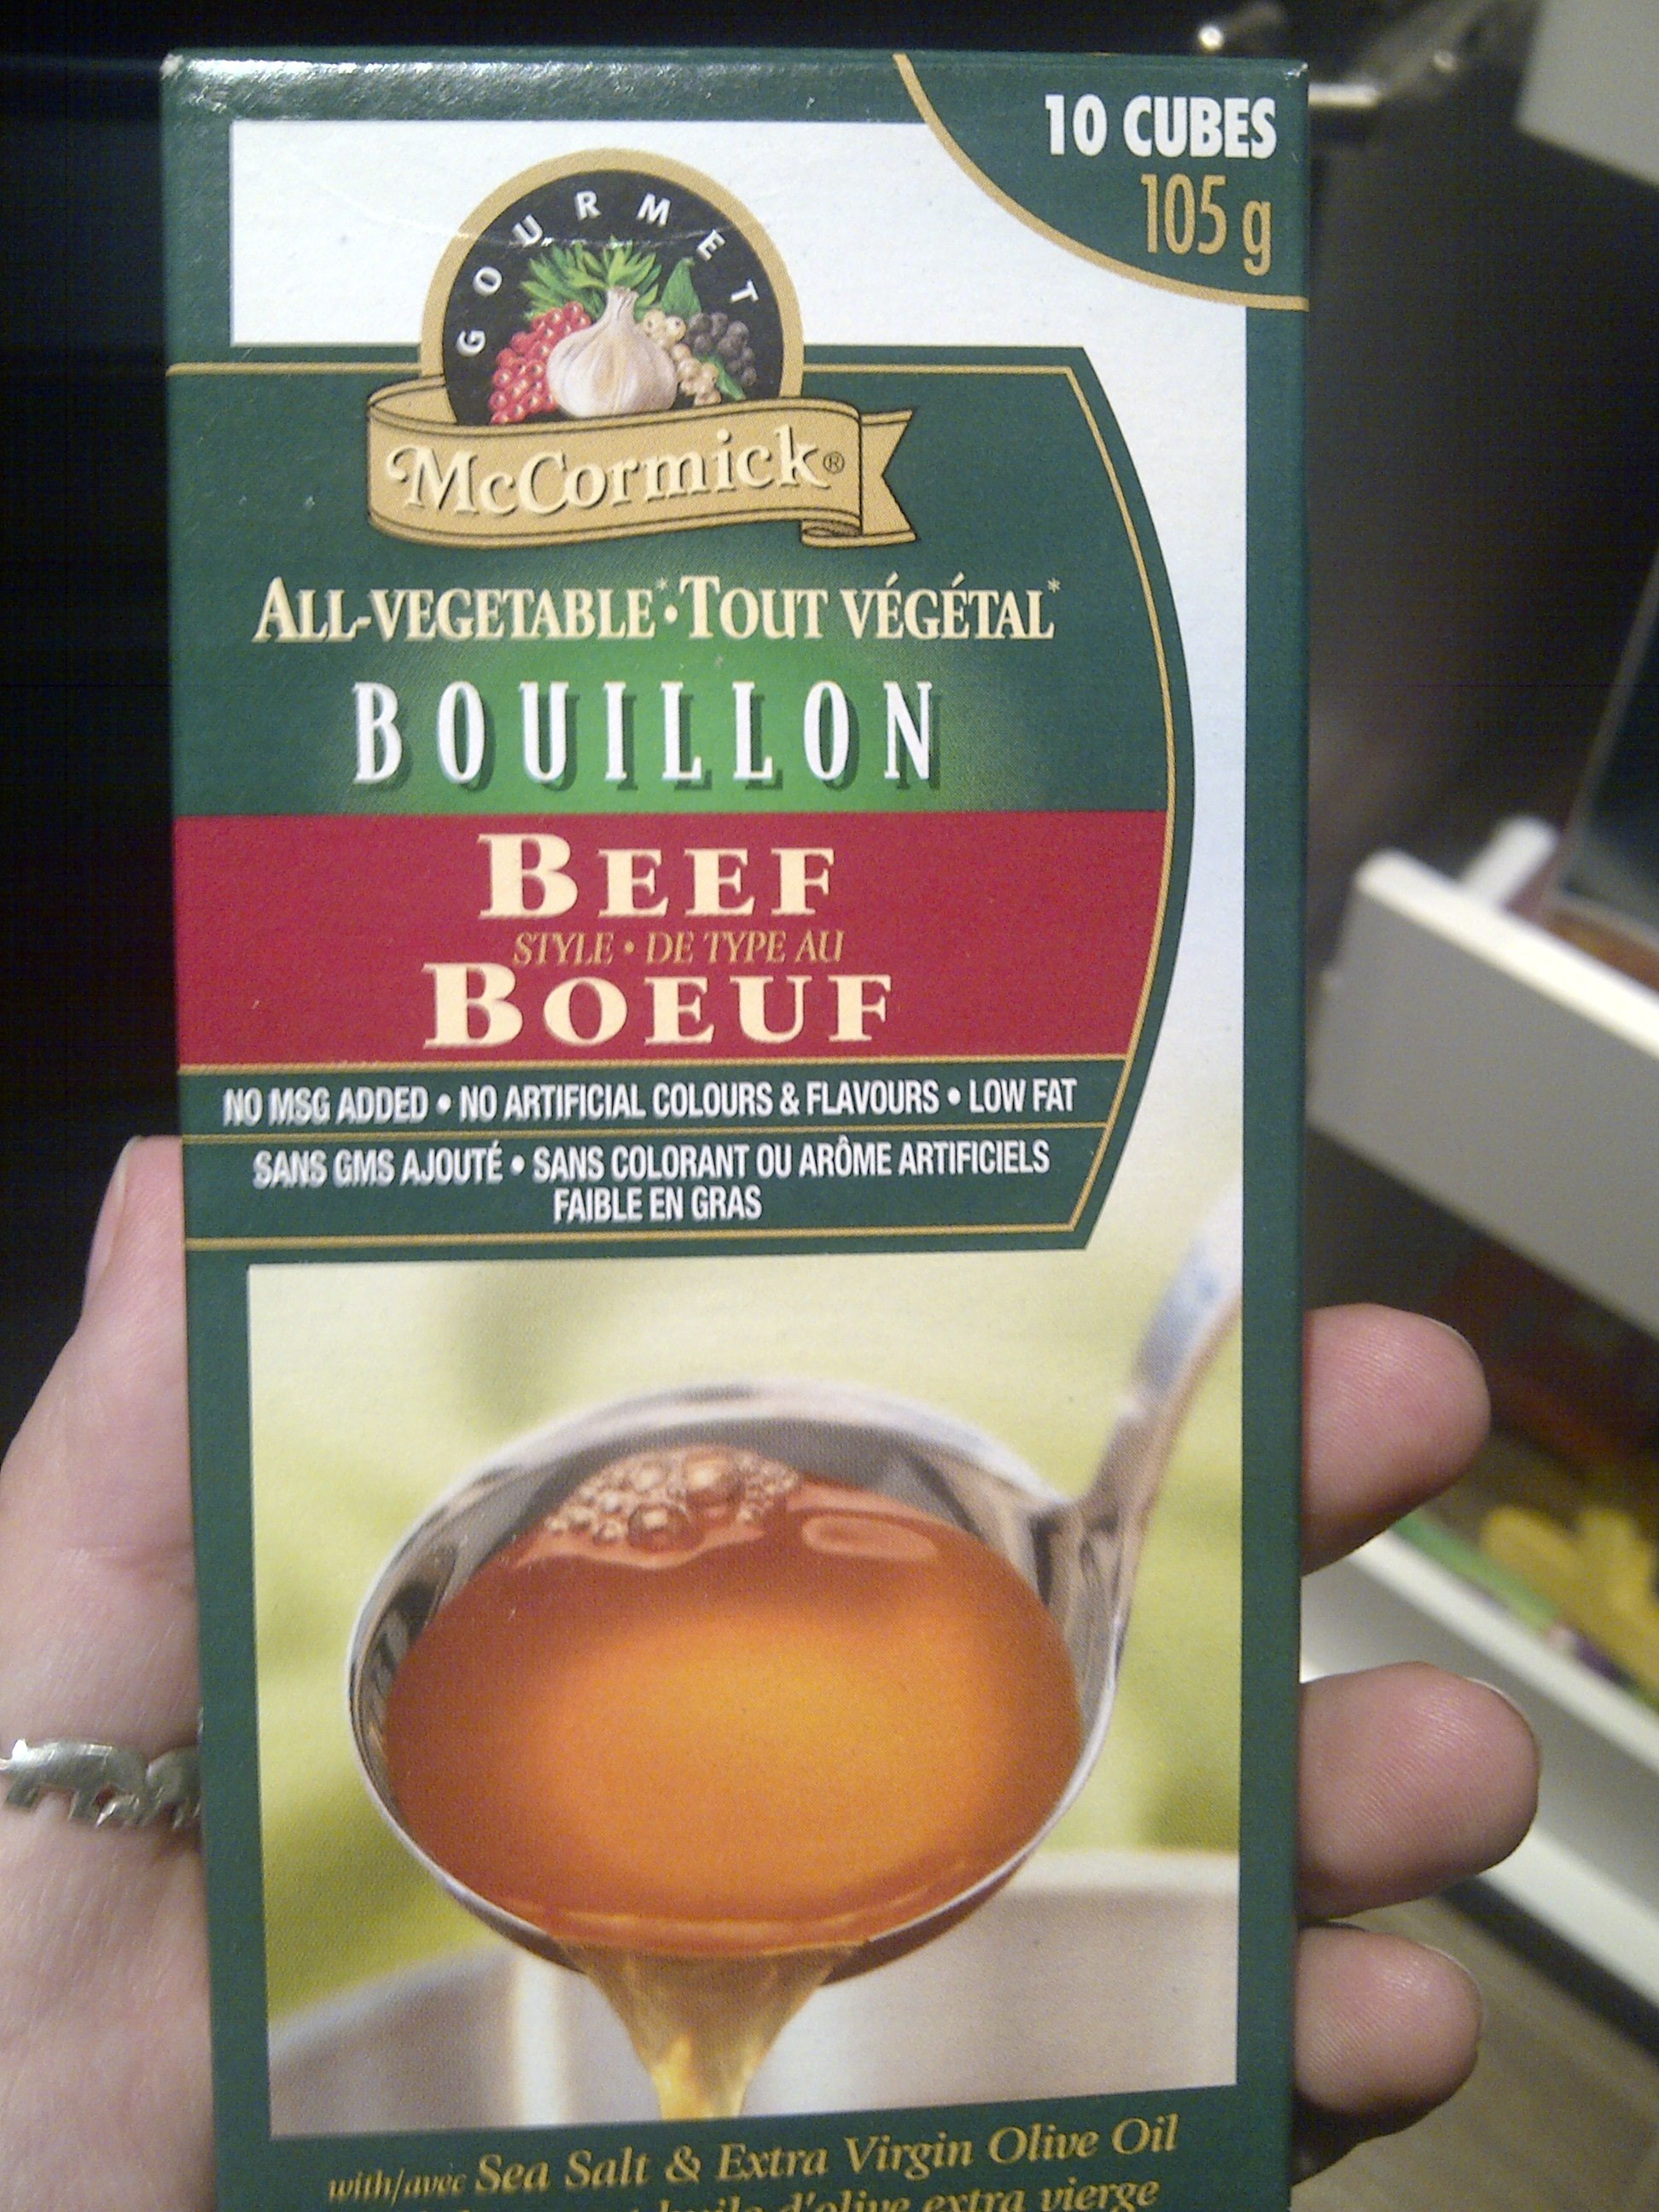 To bump up the flavour, you can do 3 beef stocks/beef bouillon ...